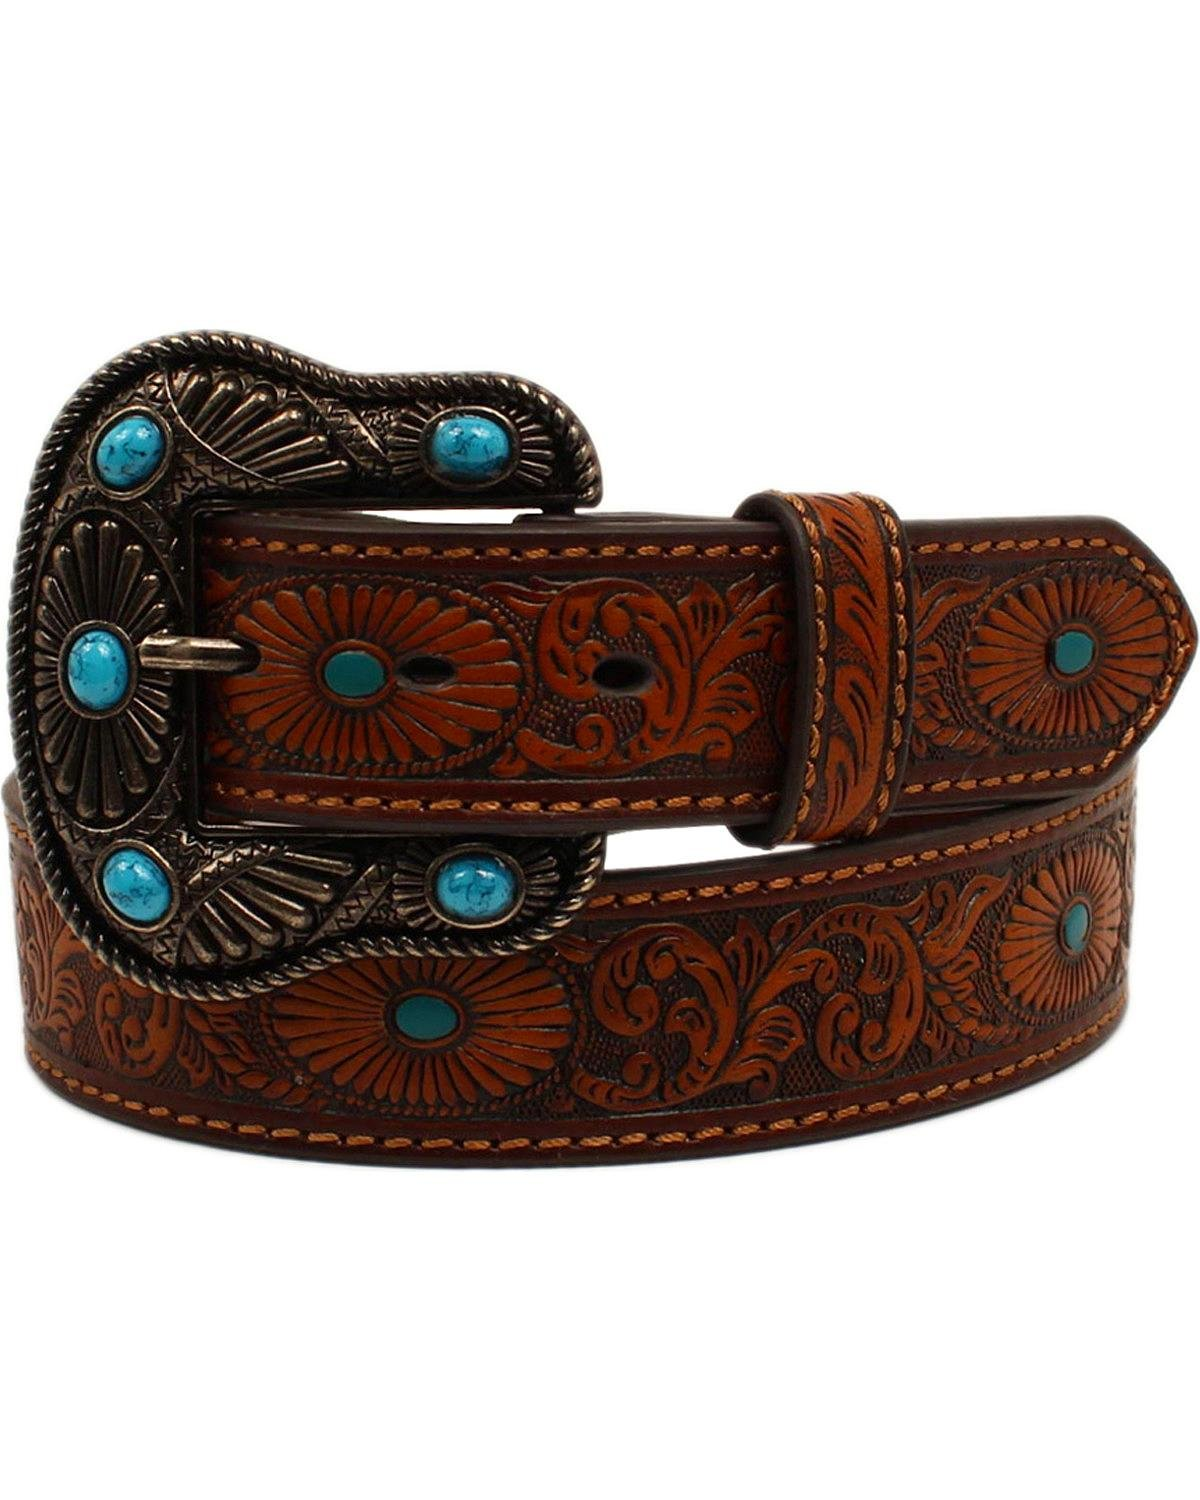 Nocona Belt Co. Women's Scroll Embossed Painted Turquoise Oval Belt, brown, Large